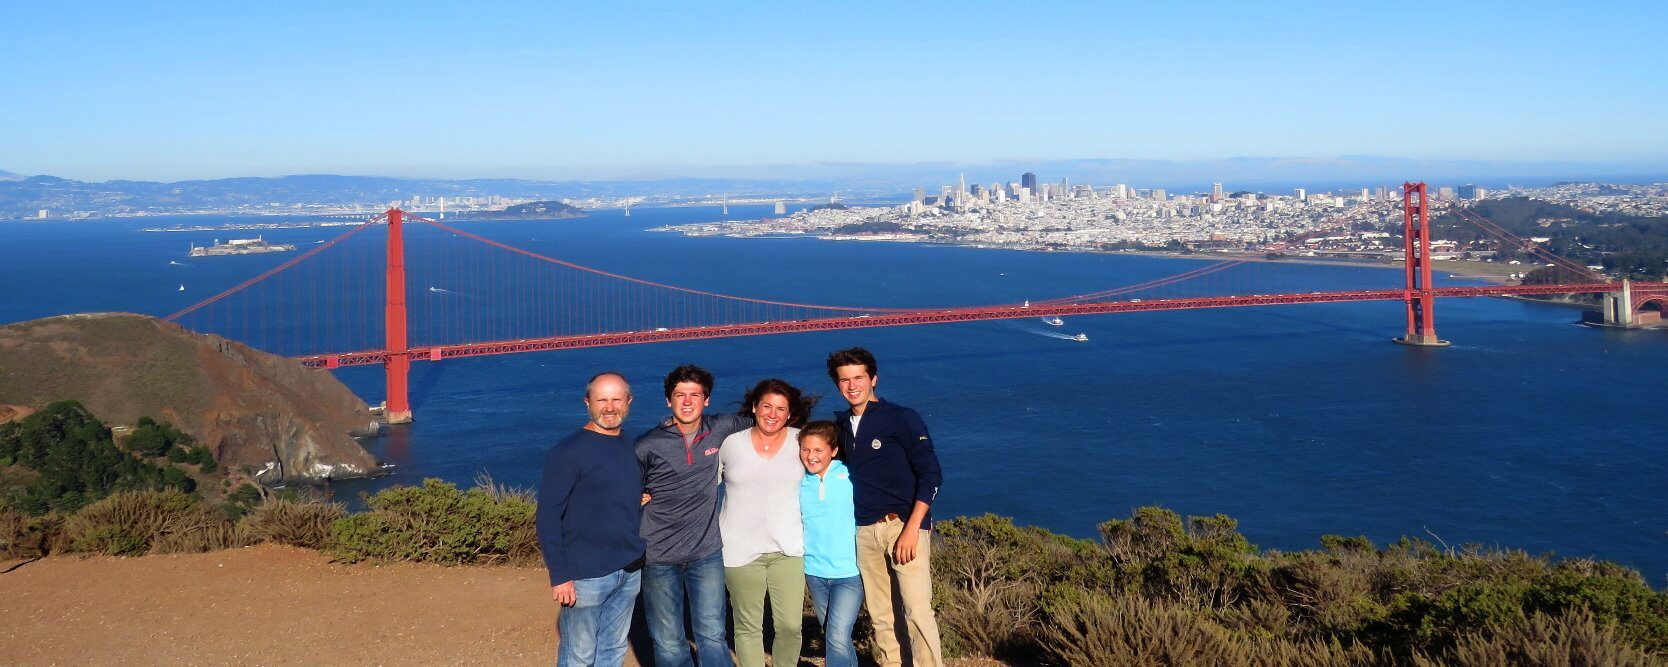 best_travel_deals_on_san_francisco_tour_packages